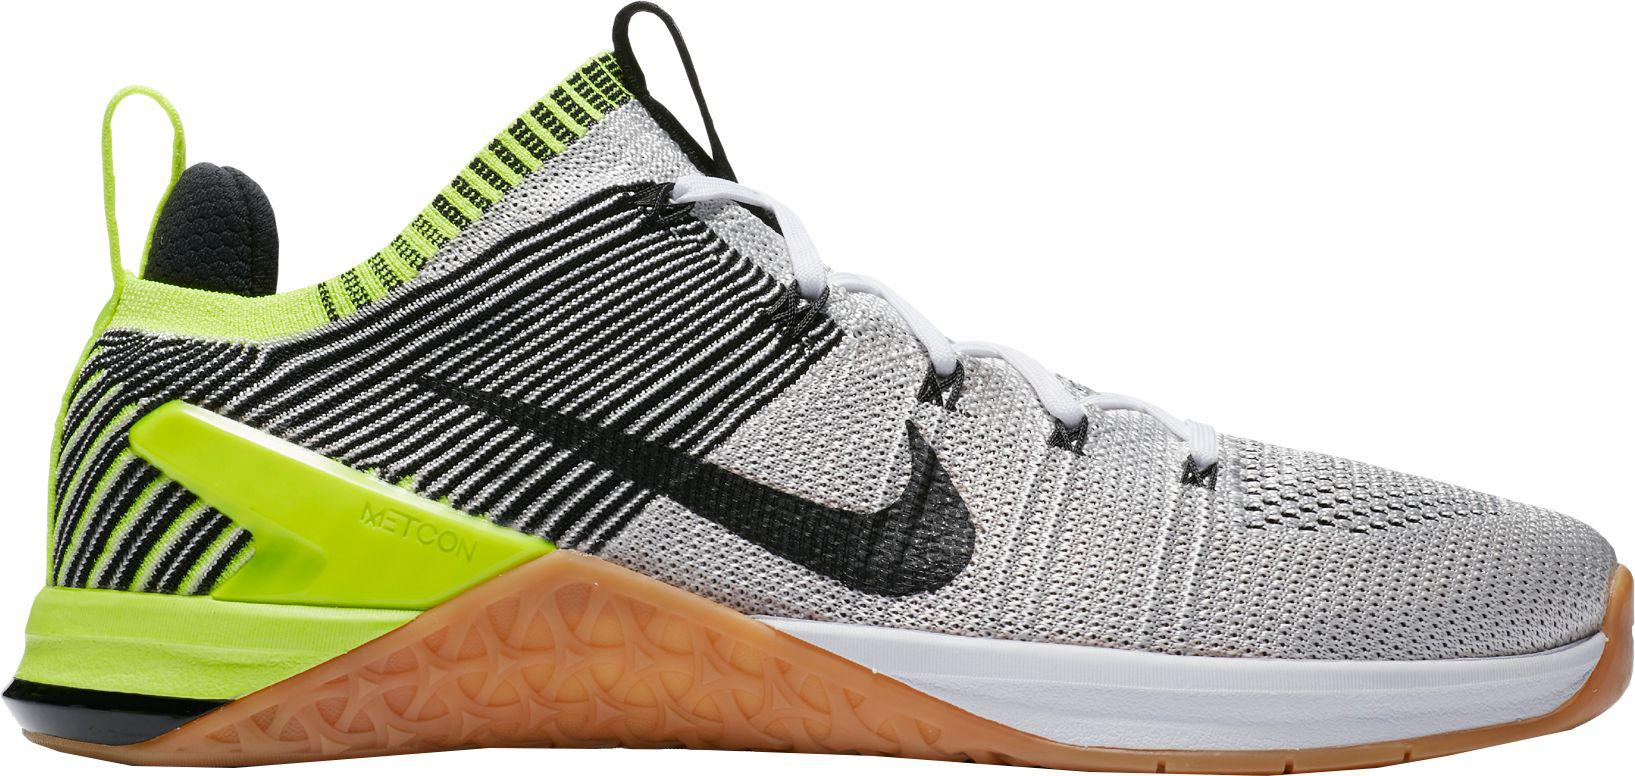 544bffd22f58b5 Nike - Multicolor Metcon Dsx Flyknit 2 Training Shoes for Men - Lyst